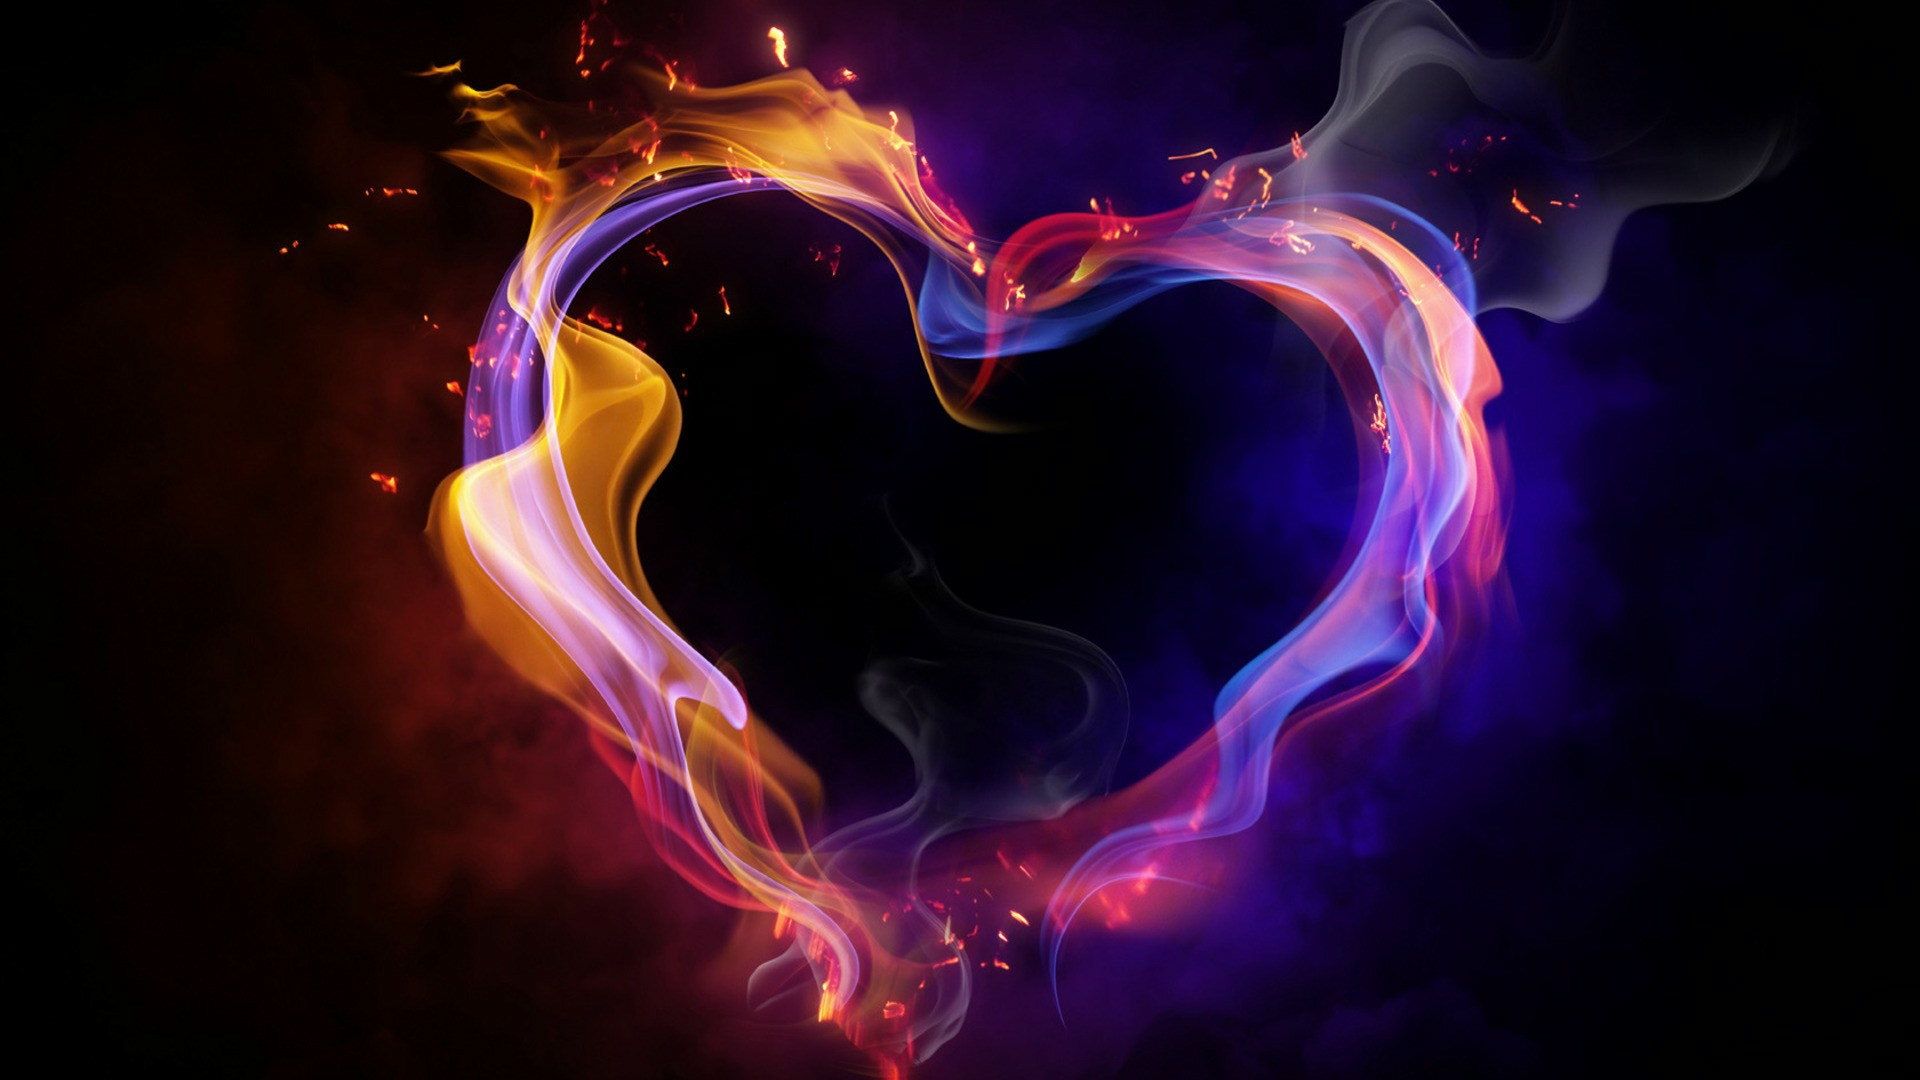 Awesome Heart Background Wallpaper